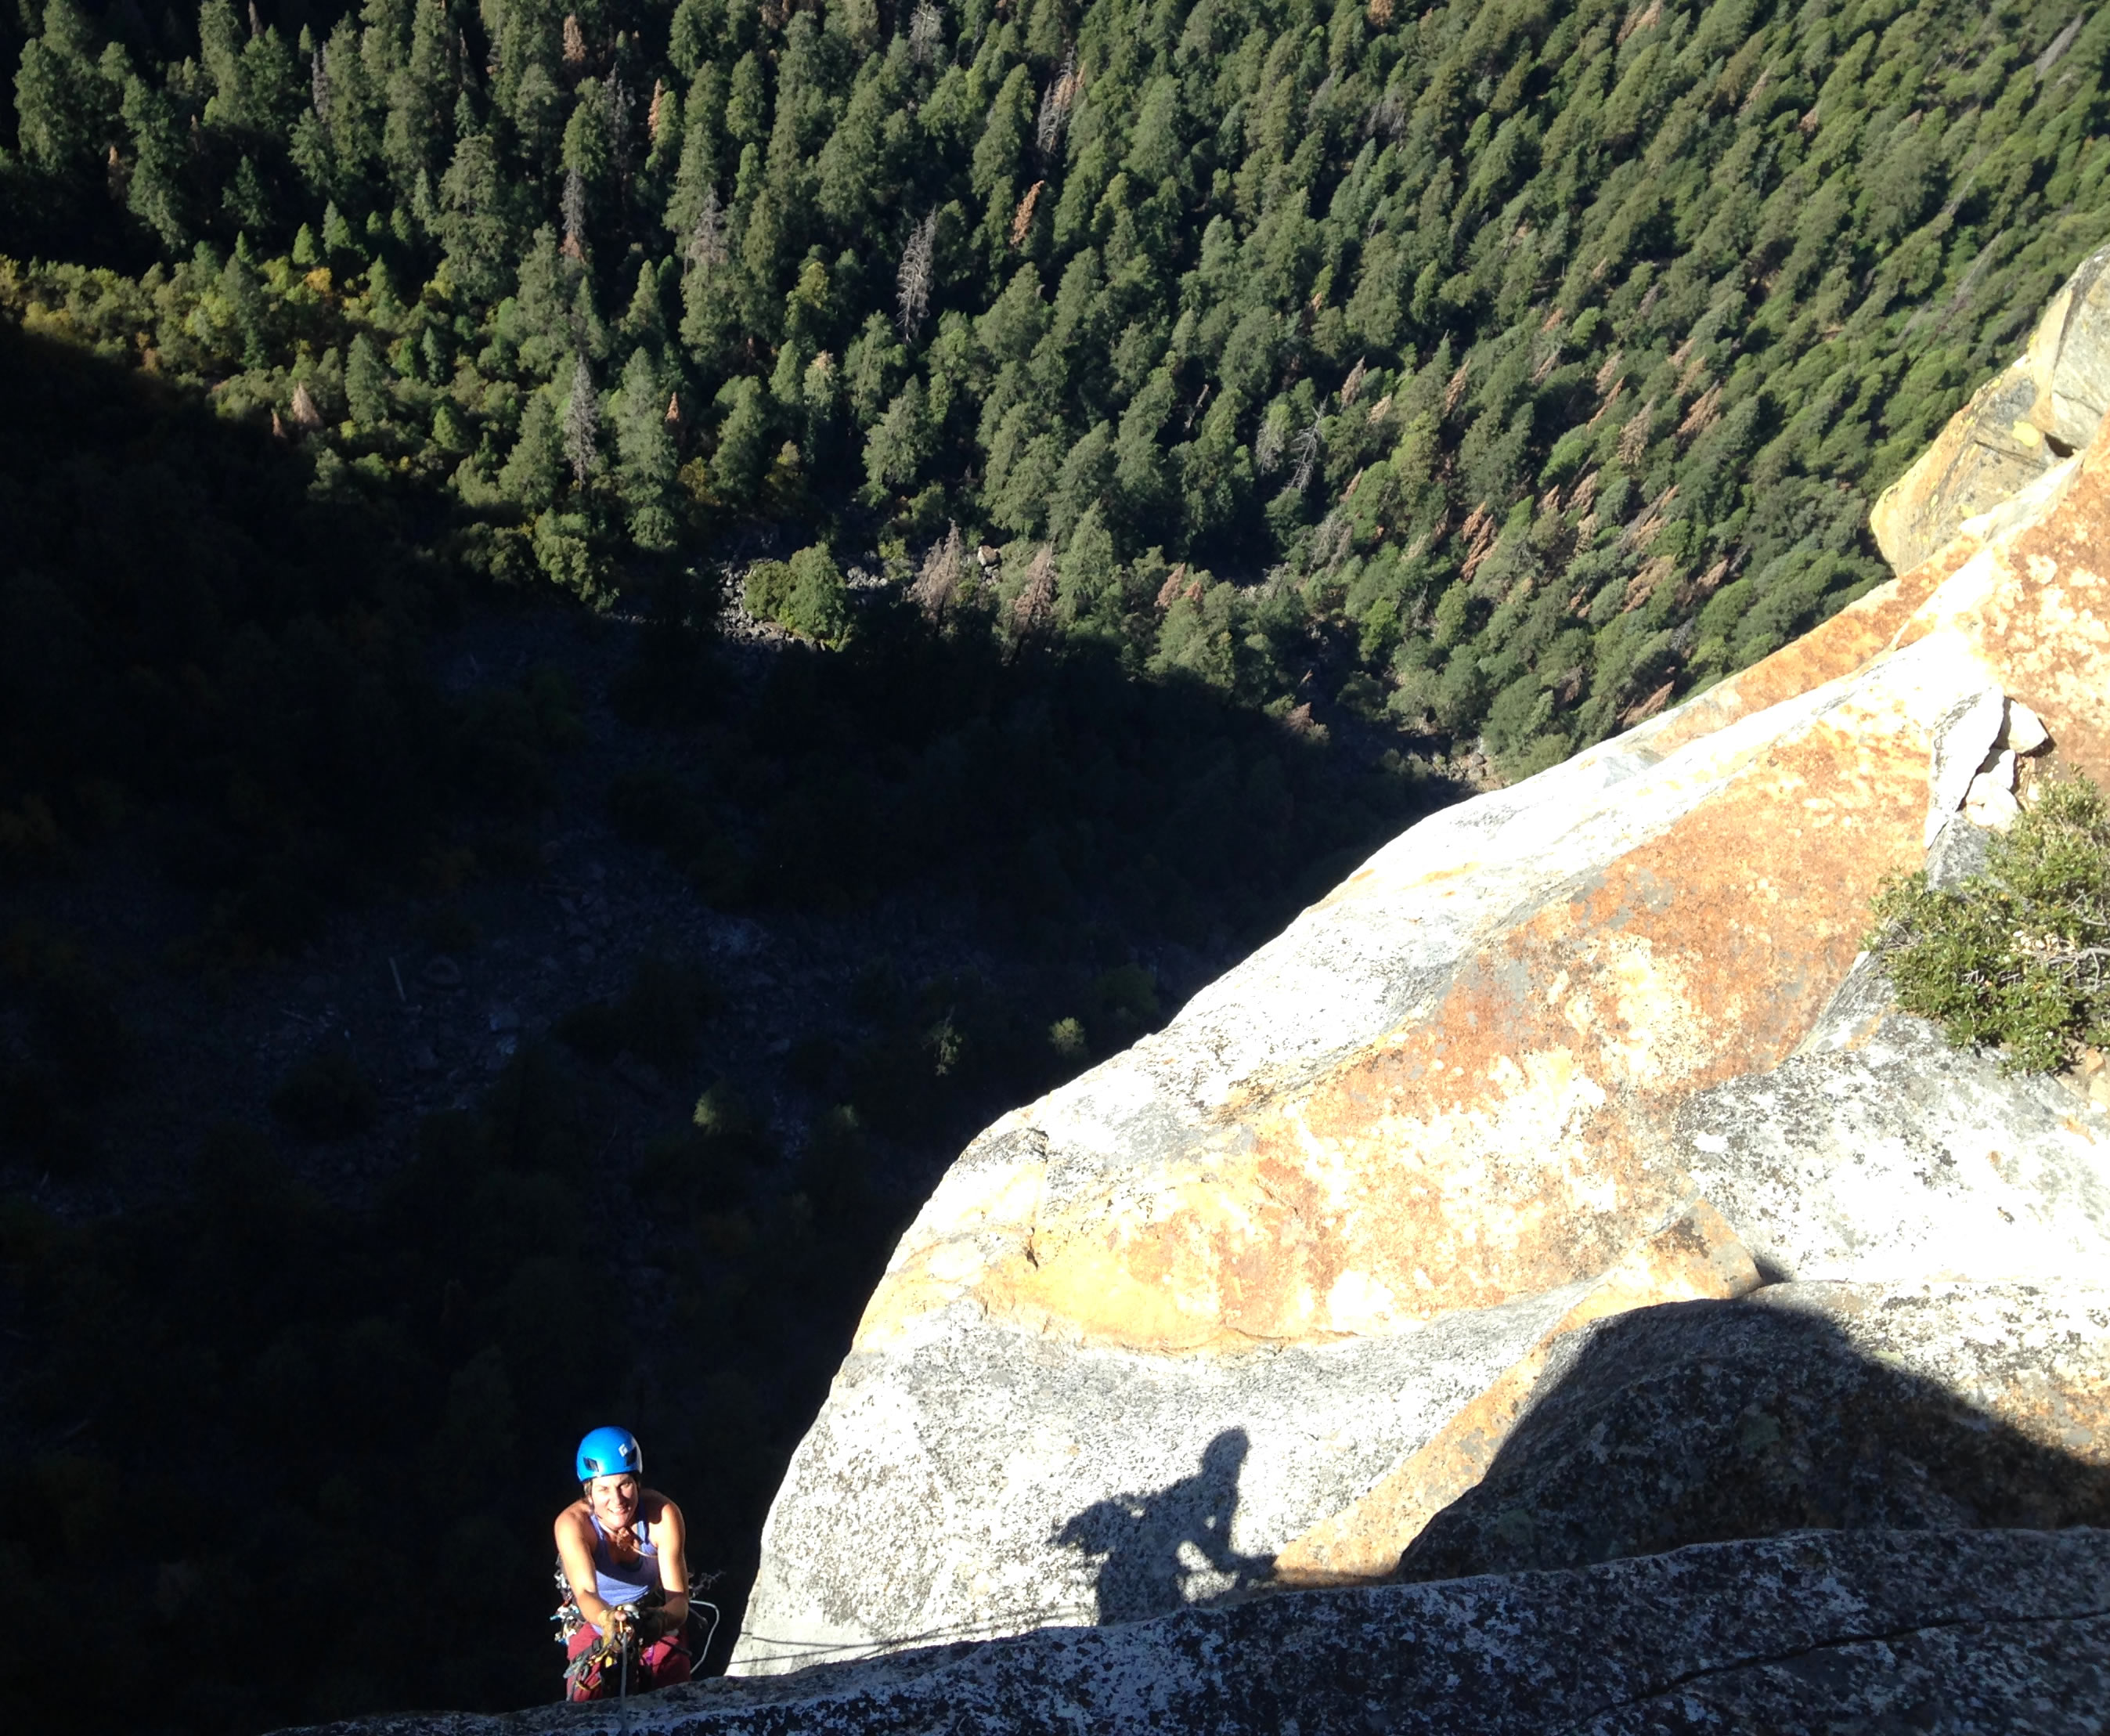 Josie McKee jugs the last pitch on Leaning Tower, Day 3. [Photo] Quinn Brett